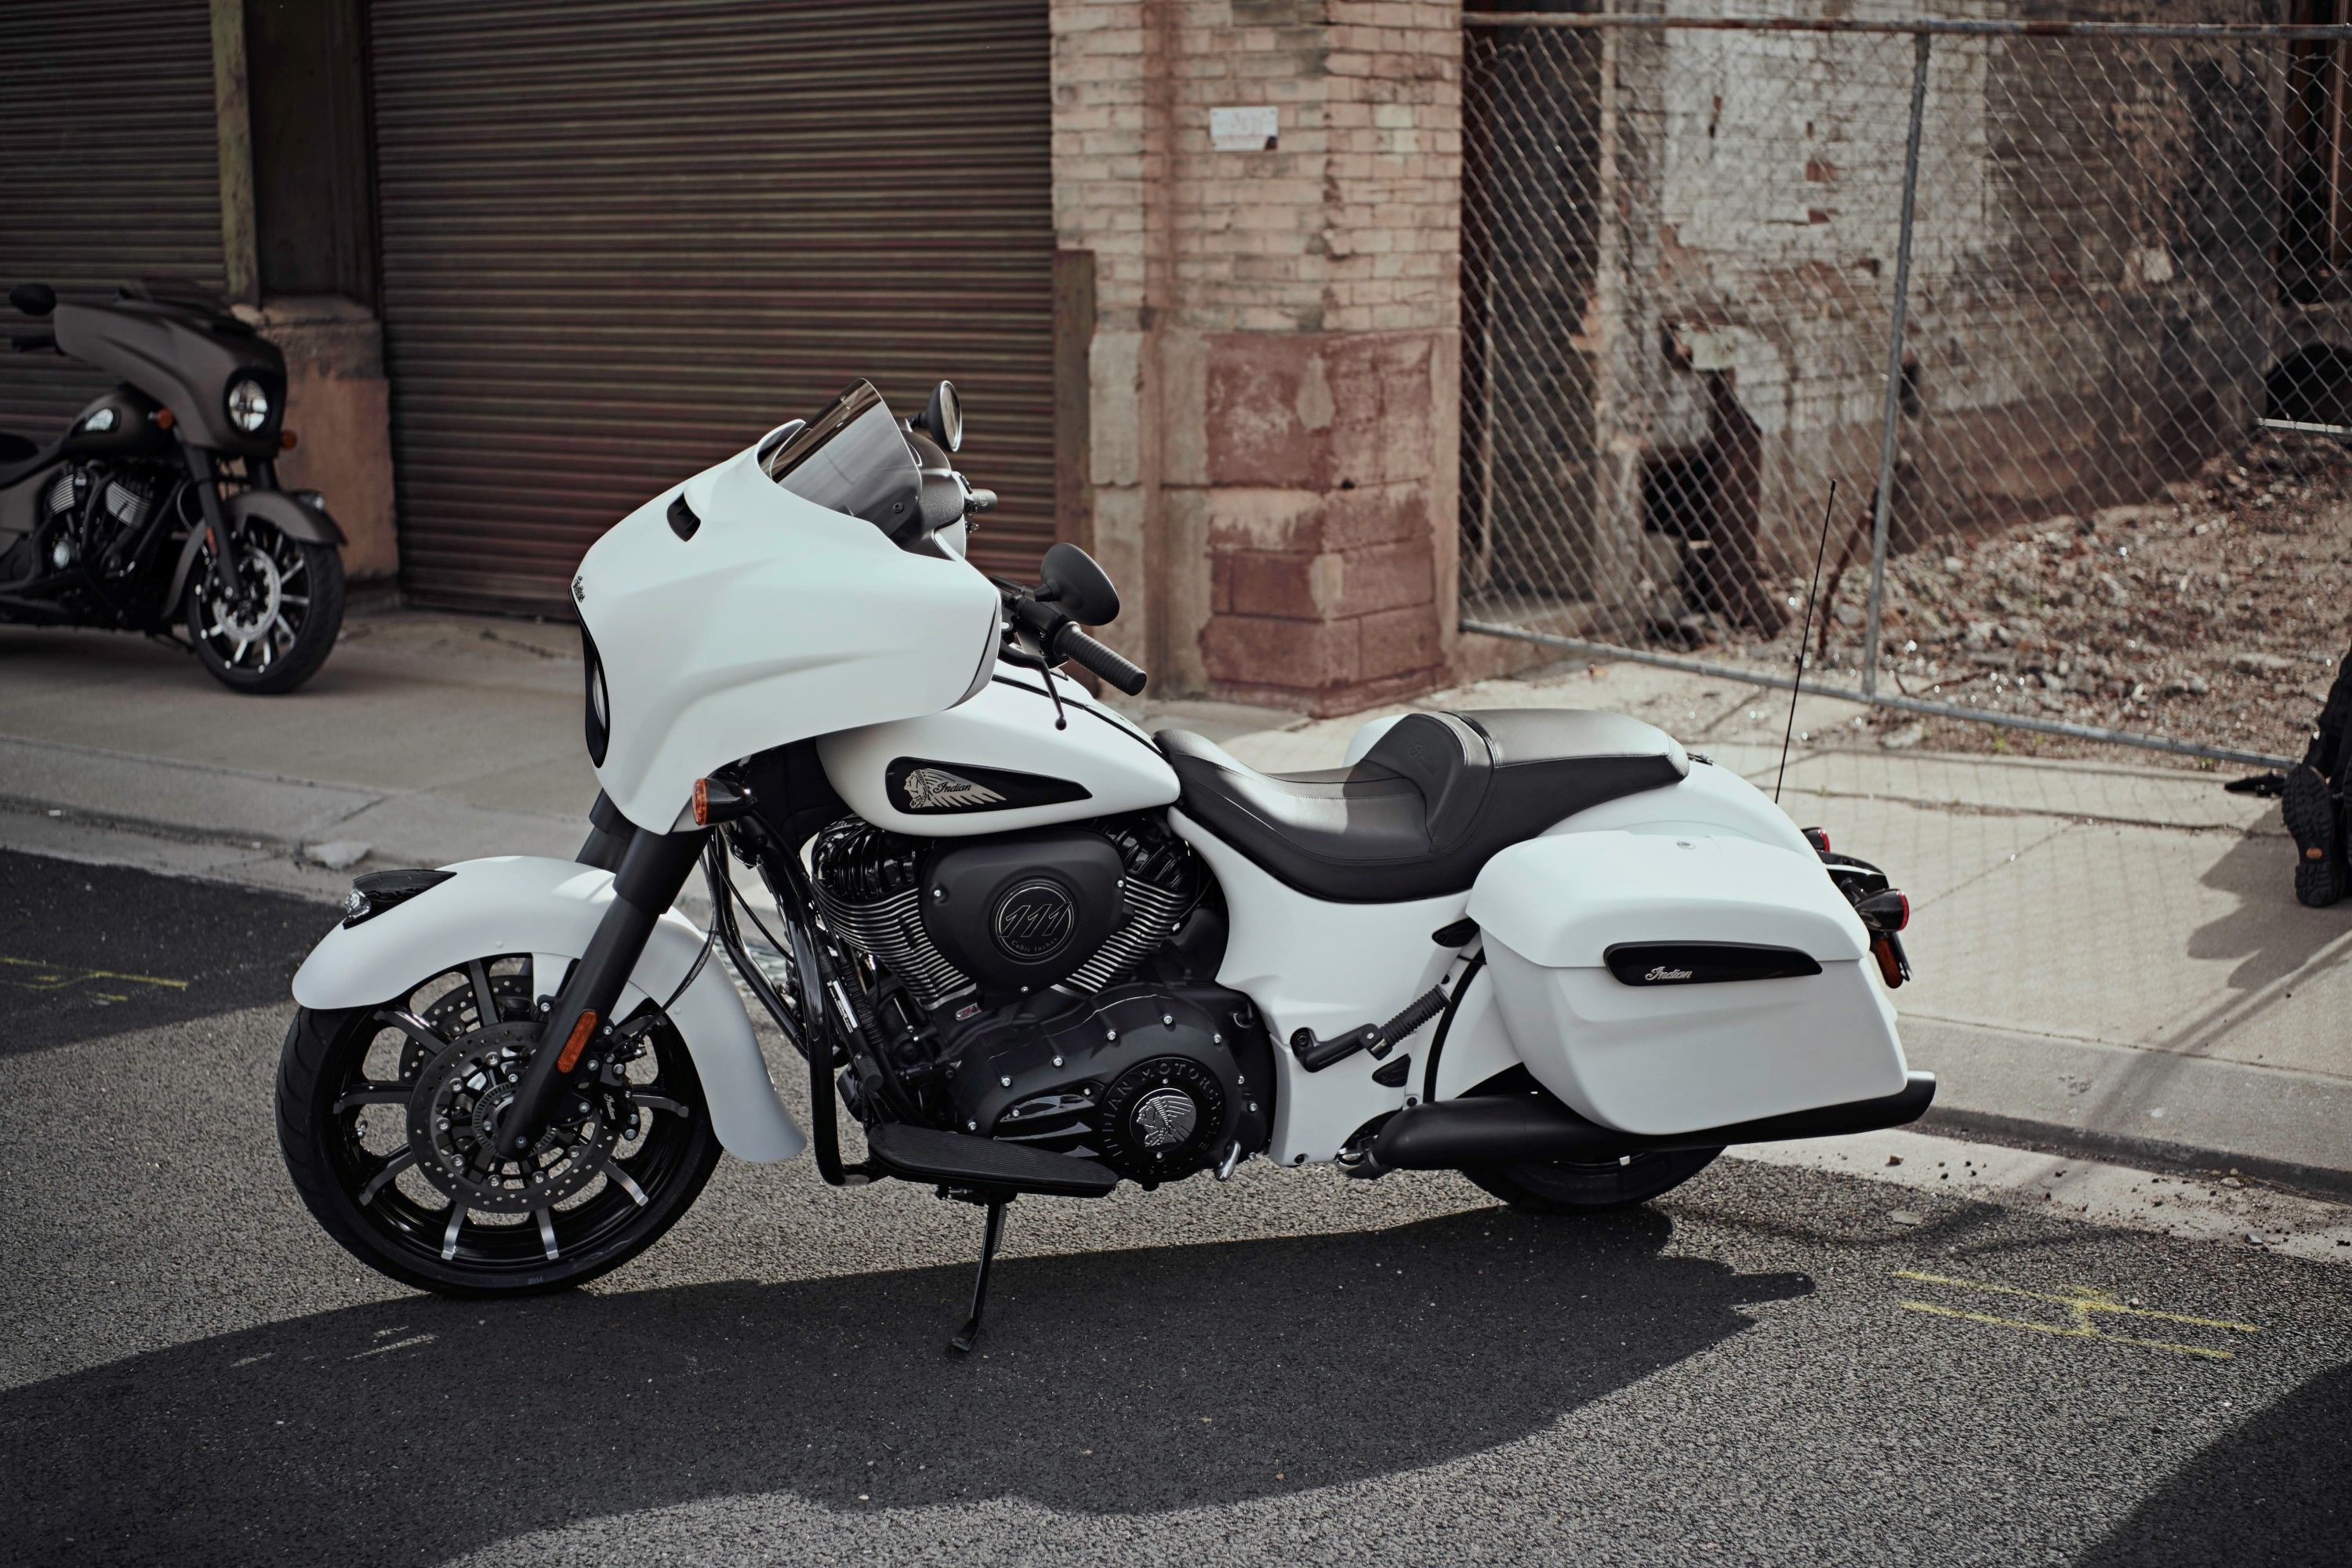 2019 Indian Chieftain Dark Horse Top Speed Indian Motorcycle Indian Dark Horse Indian Motorbike